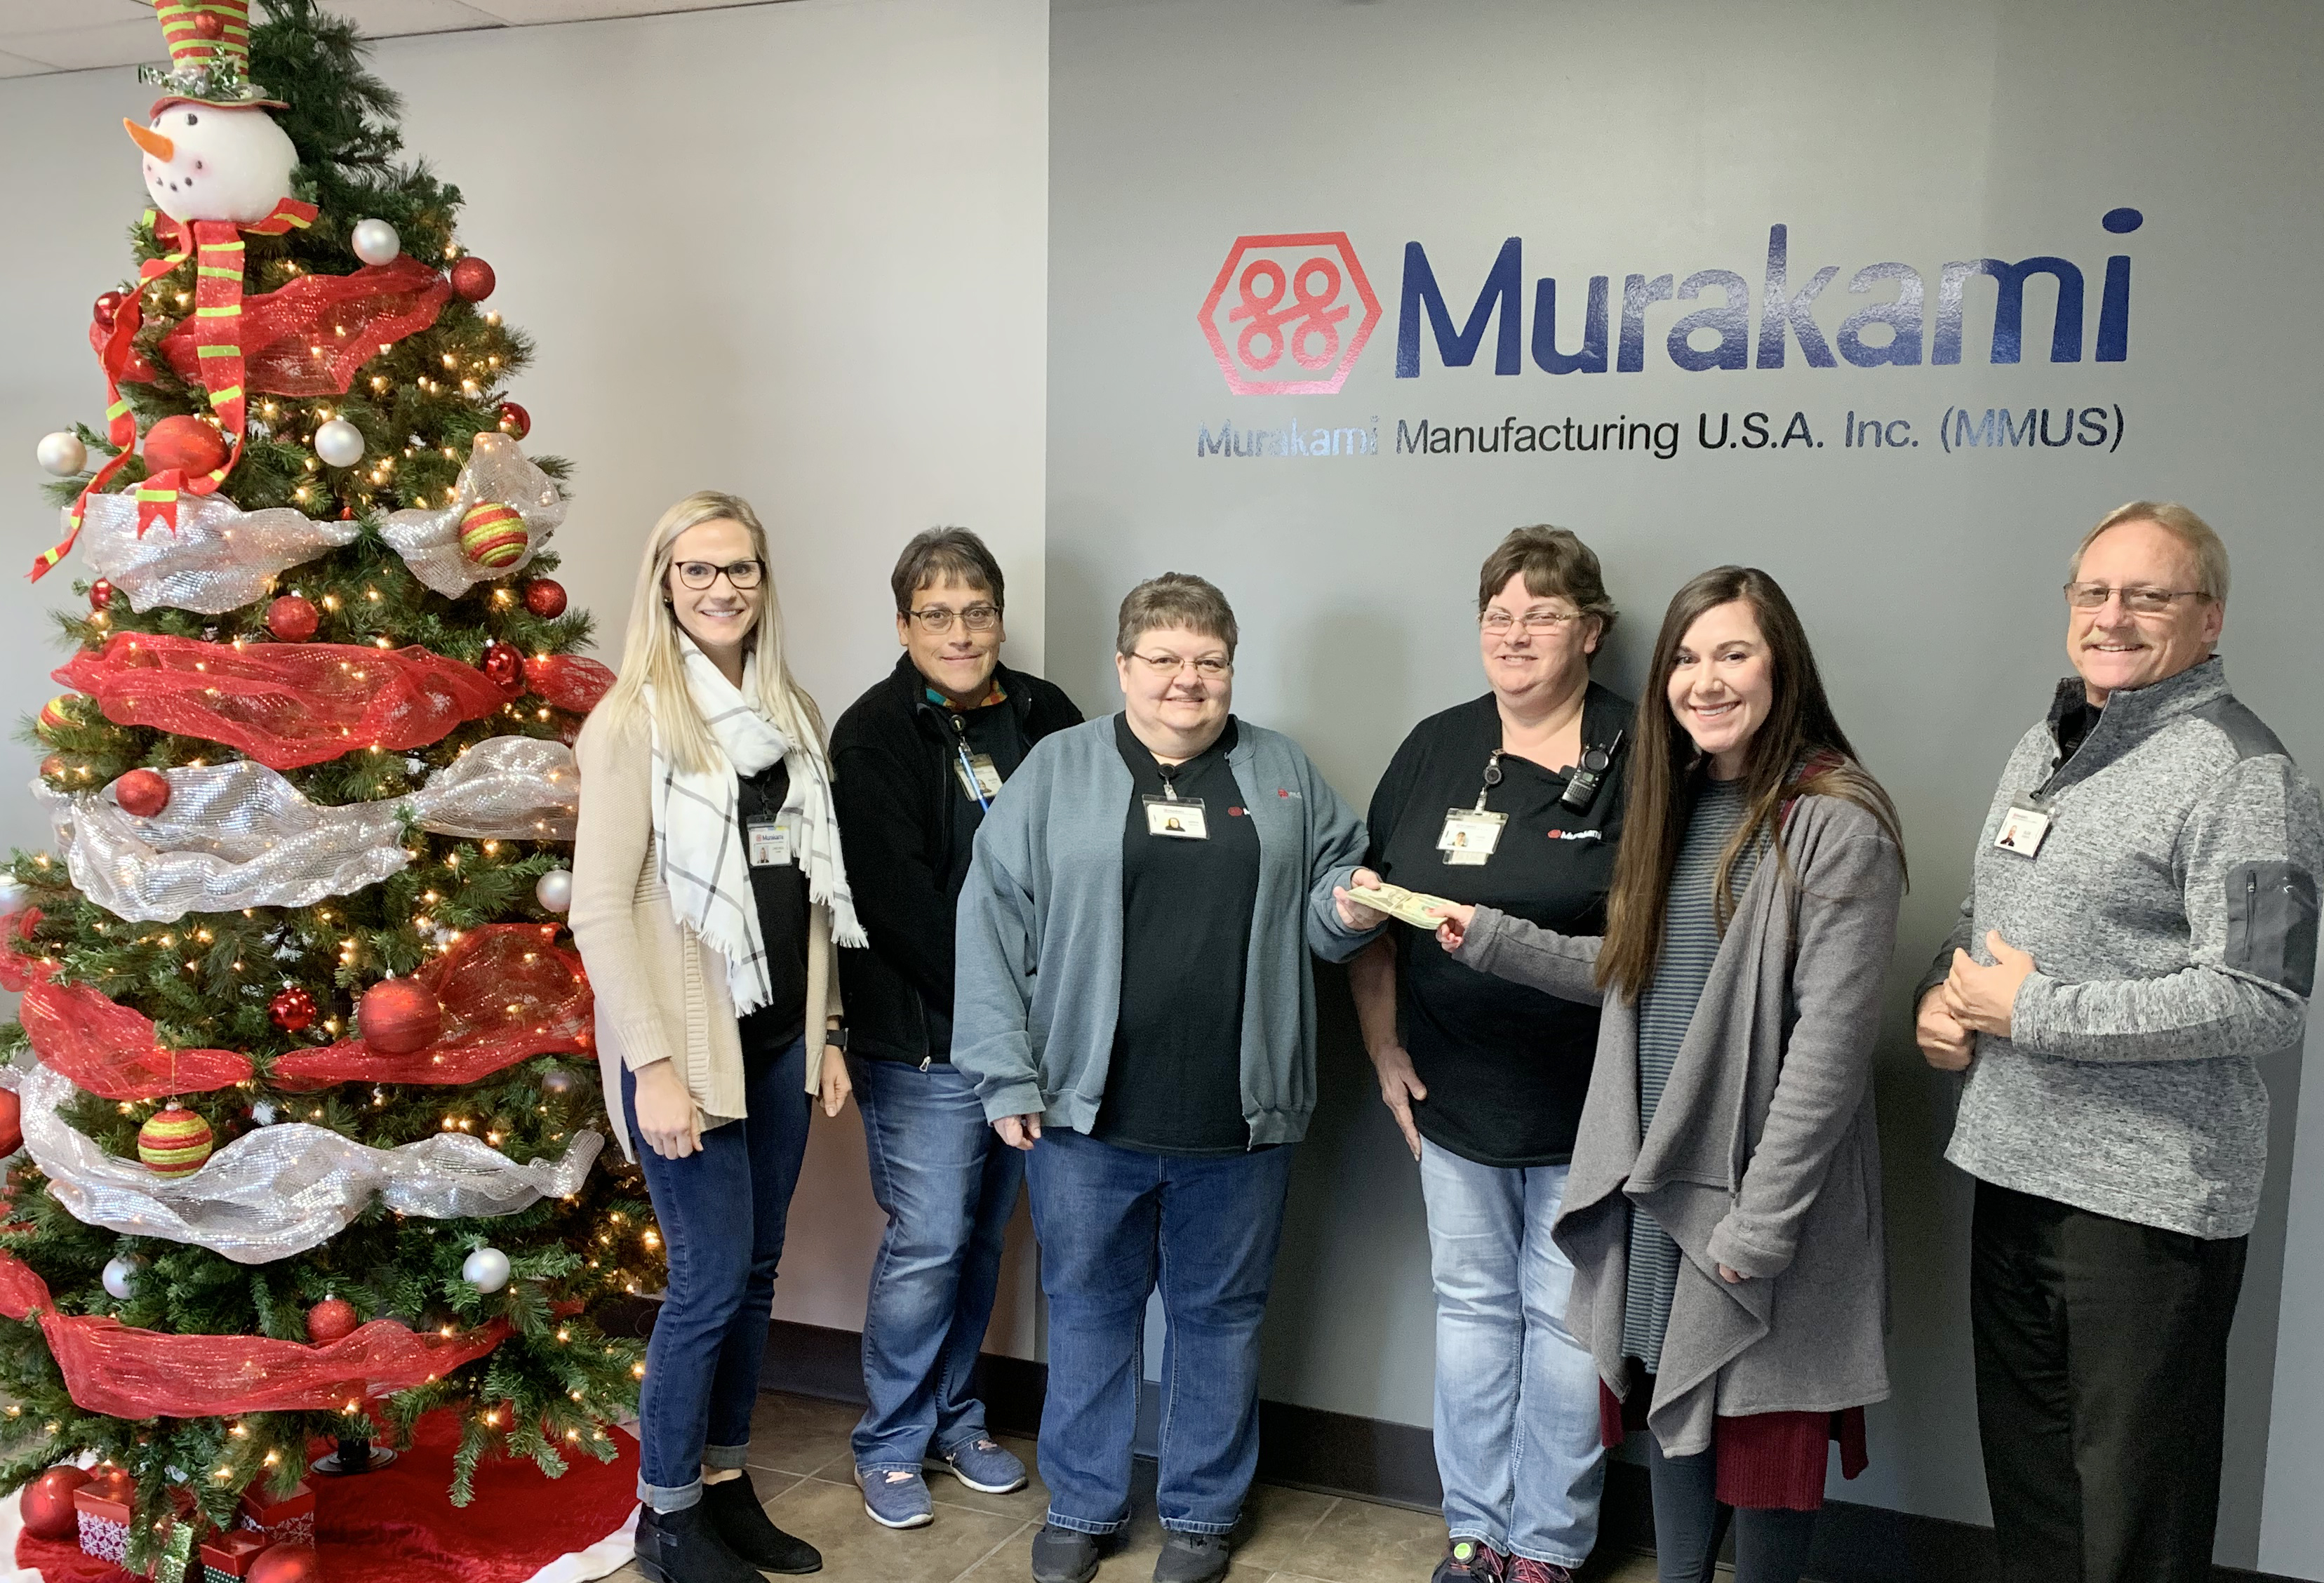 Campbellsville Family Resource and Youth Services Center recently received a $1,000 donation from Murakami Manufacturing USA to help Campbellsville Independent Schools' students. Accepting the donation from Murakami employees is FRYSC Director Courtney Sowell, fifth from left.